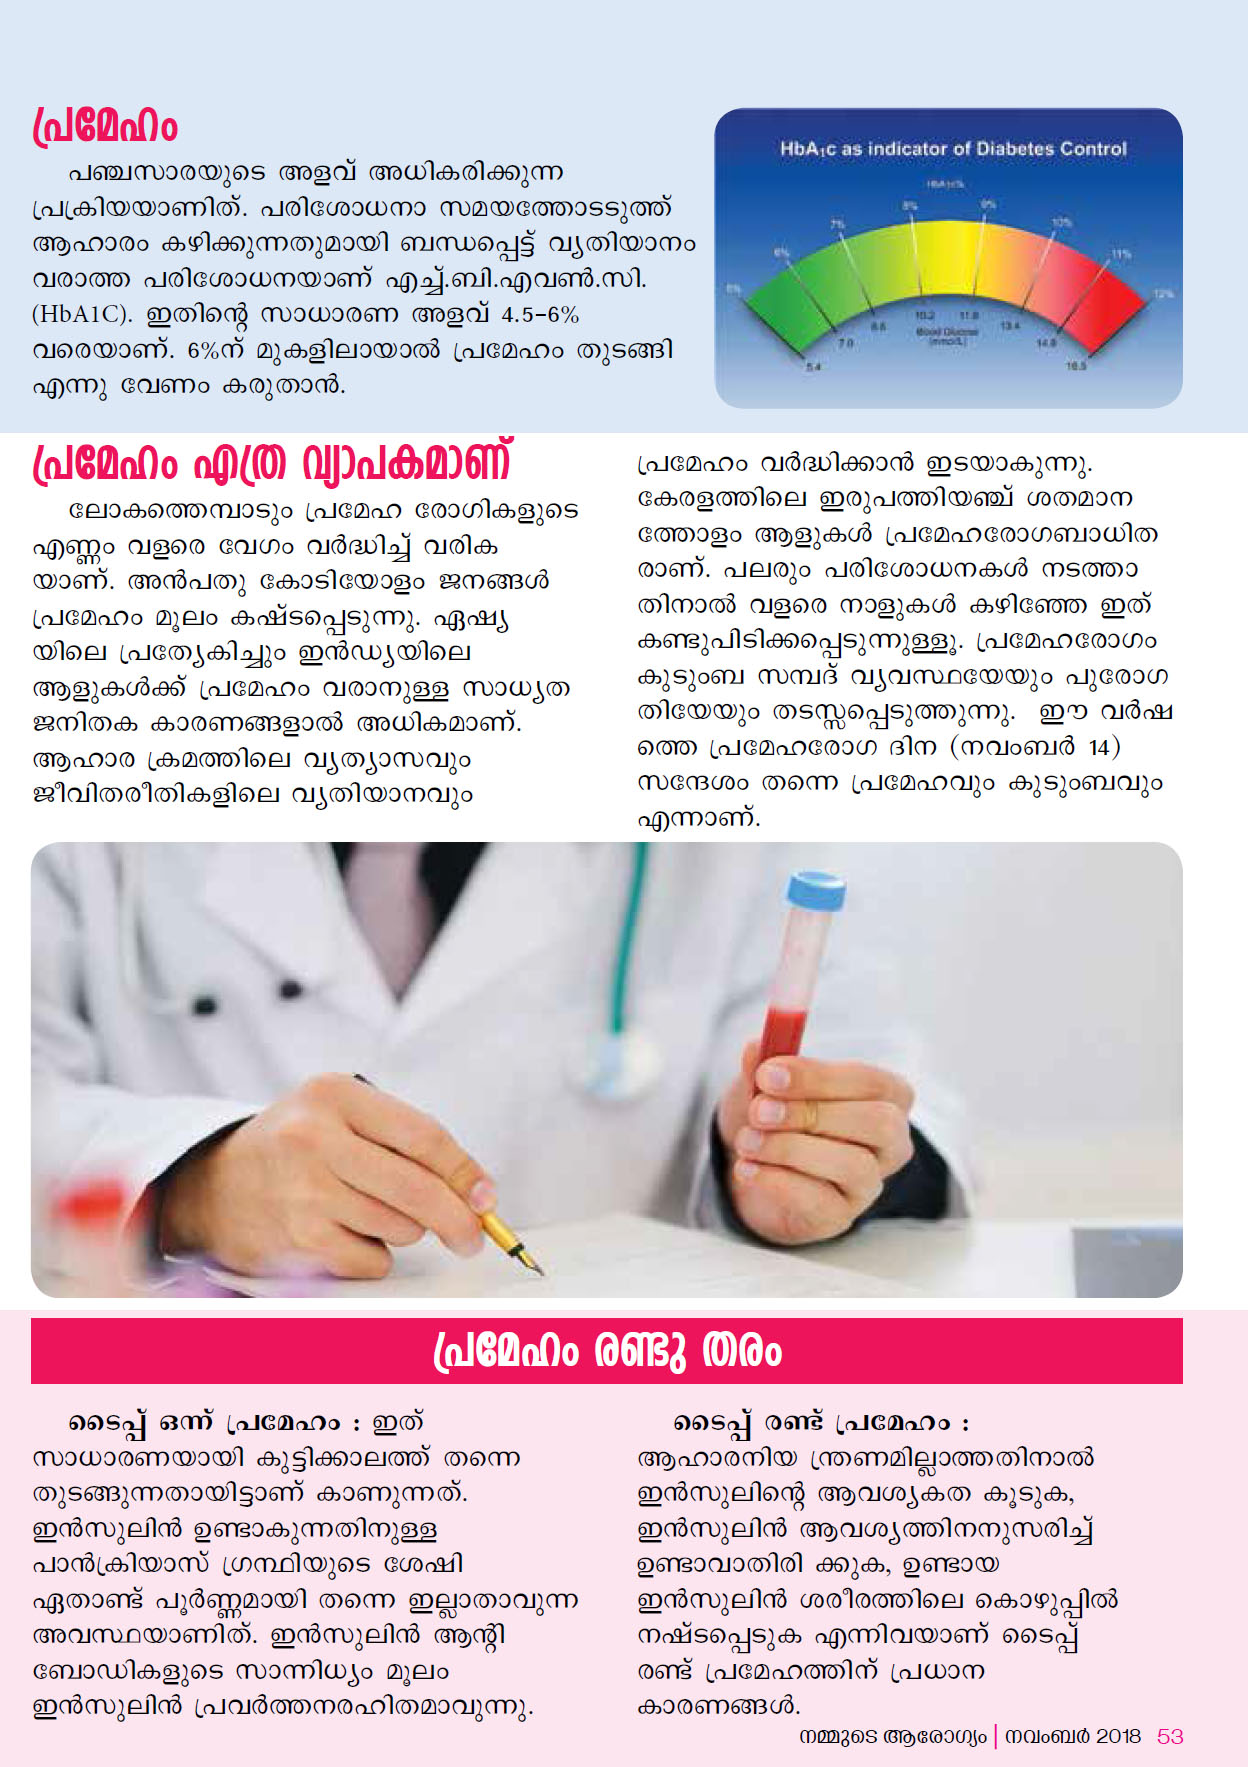 Keyhole Surgery for Diabetes by Dr R Padmakumar Page 2